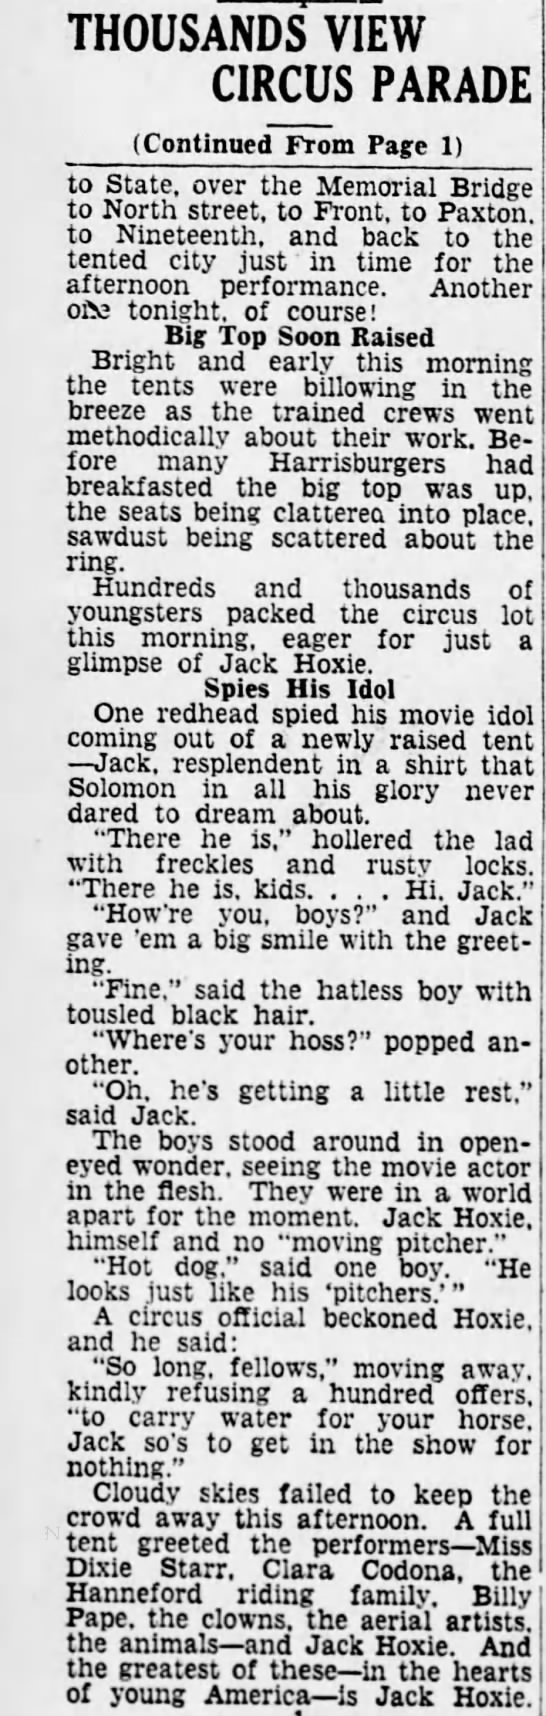 Sparks Article P2 5-9-1933 - THOUSANDS VIEW CIRCUS PARADE (Continued From...